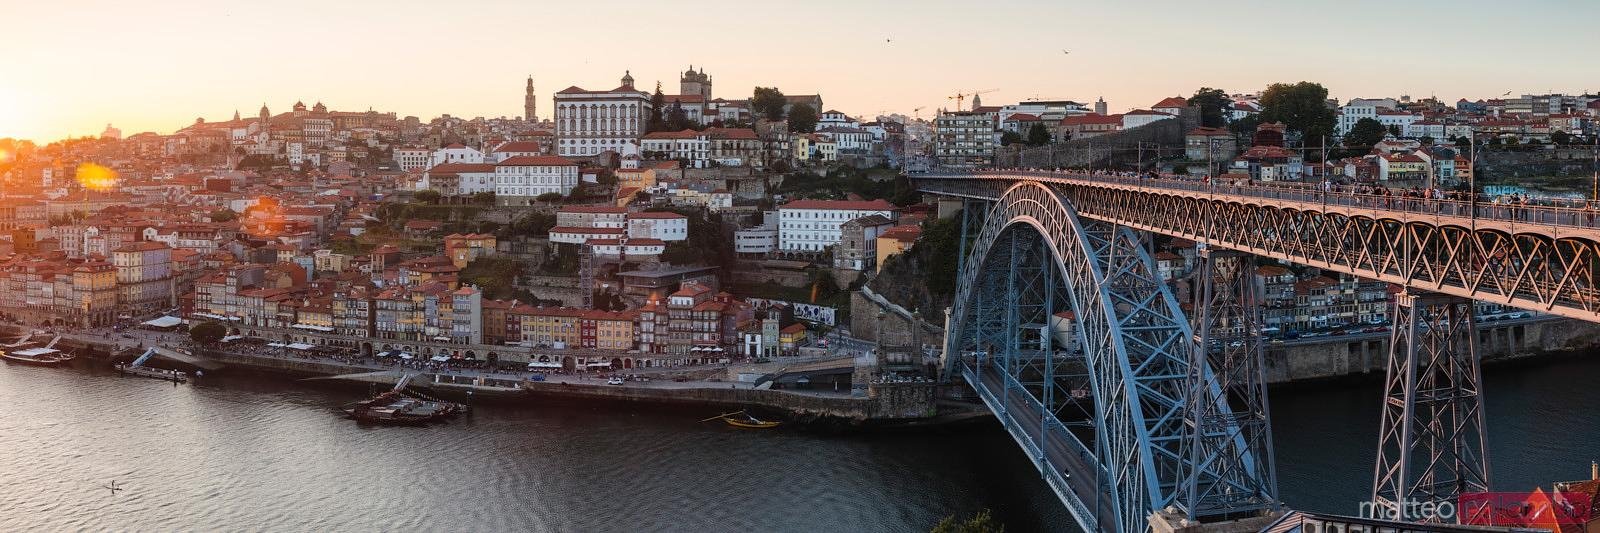 Luis I bridge and Ribeira panorama, Porto, Portugal